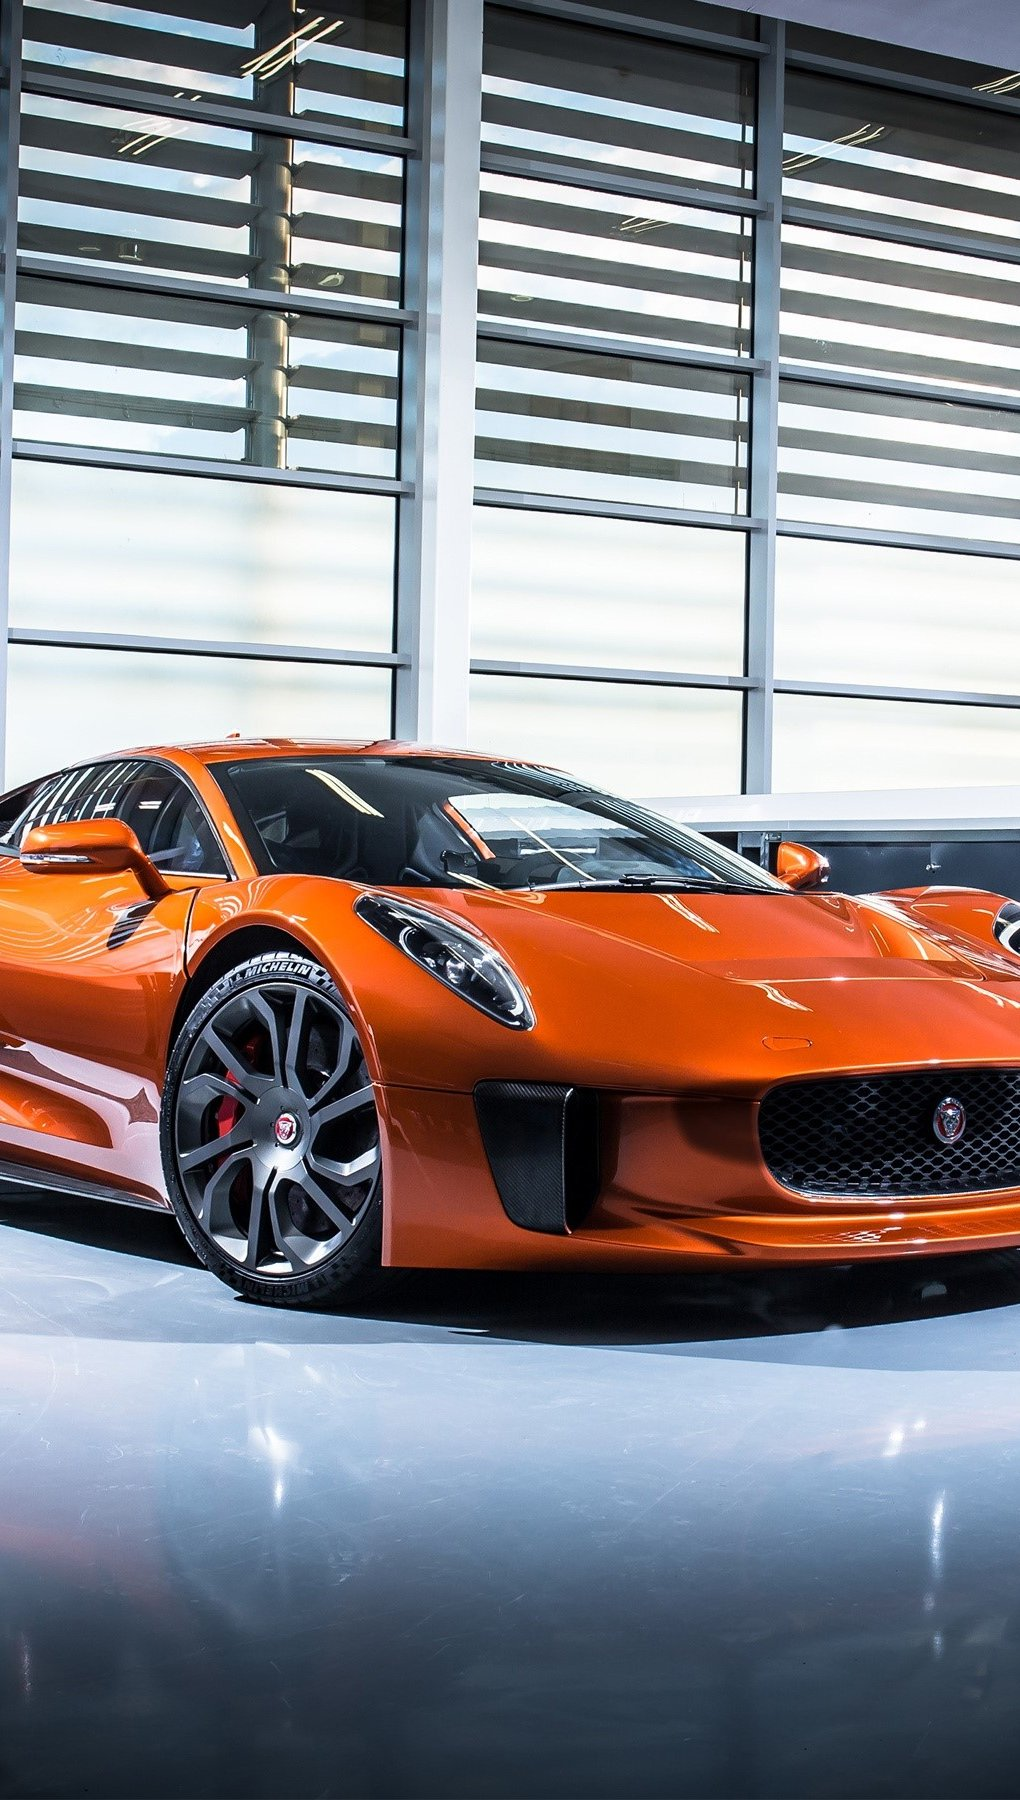 Wallpaper Jaguar C X75 Specter Cart Vertical